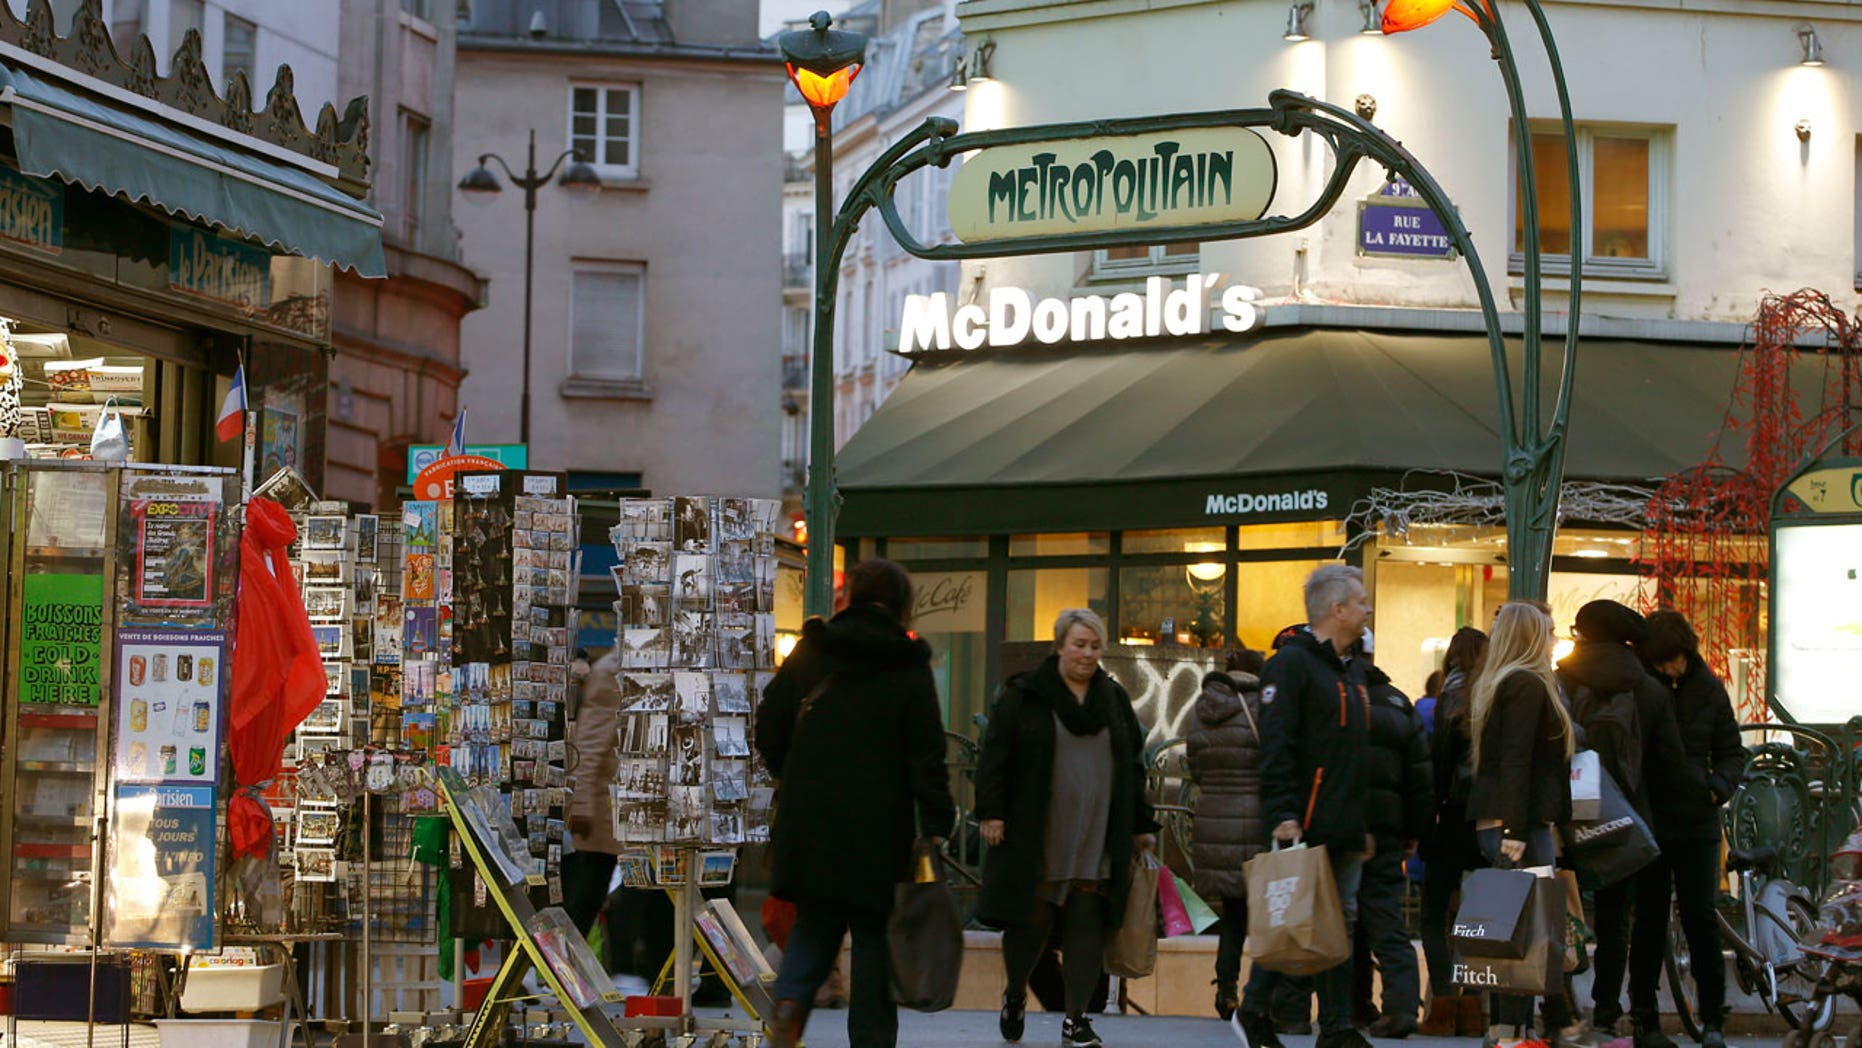 McDonald's restaurants in France are about to get slightly fancier.